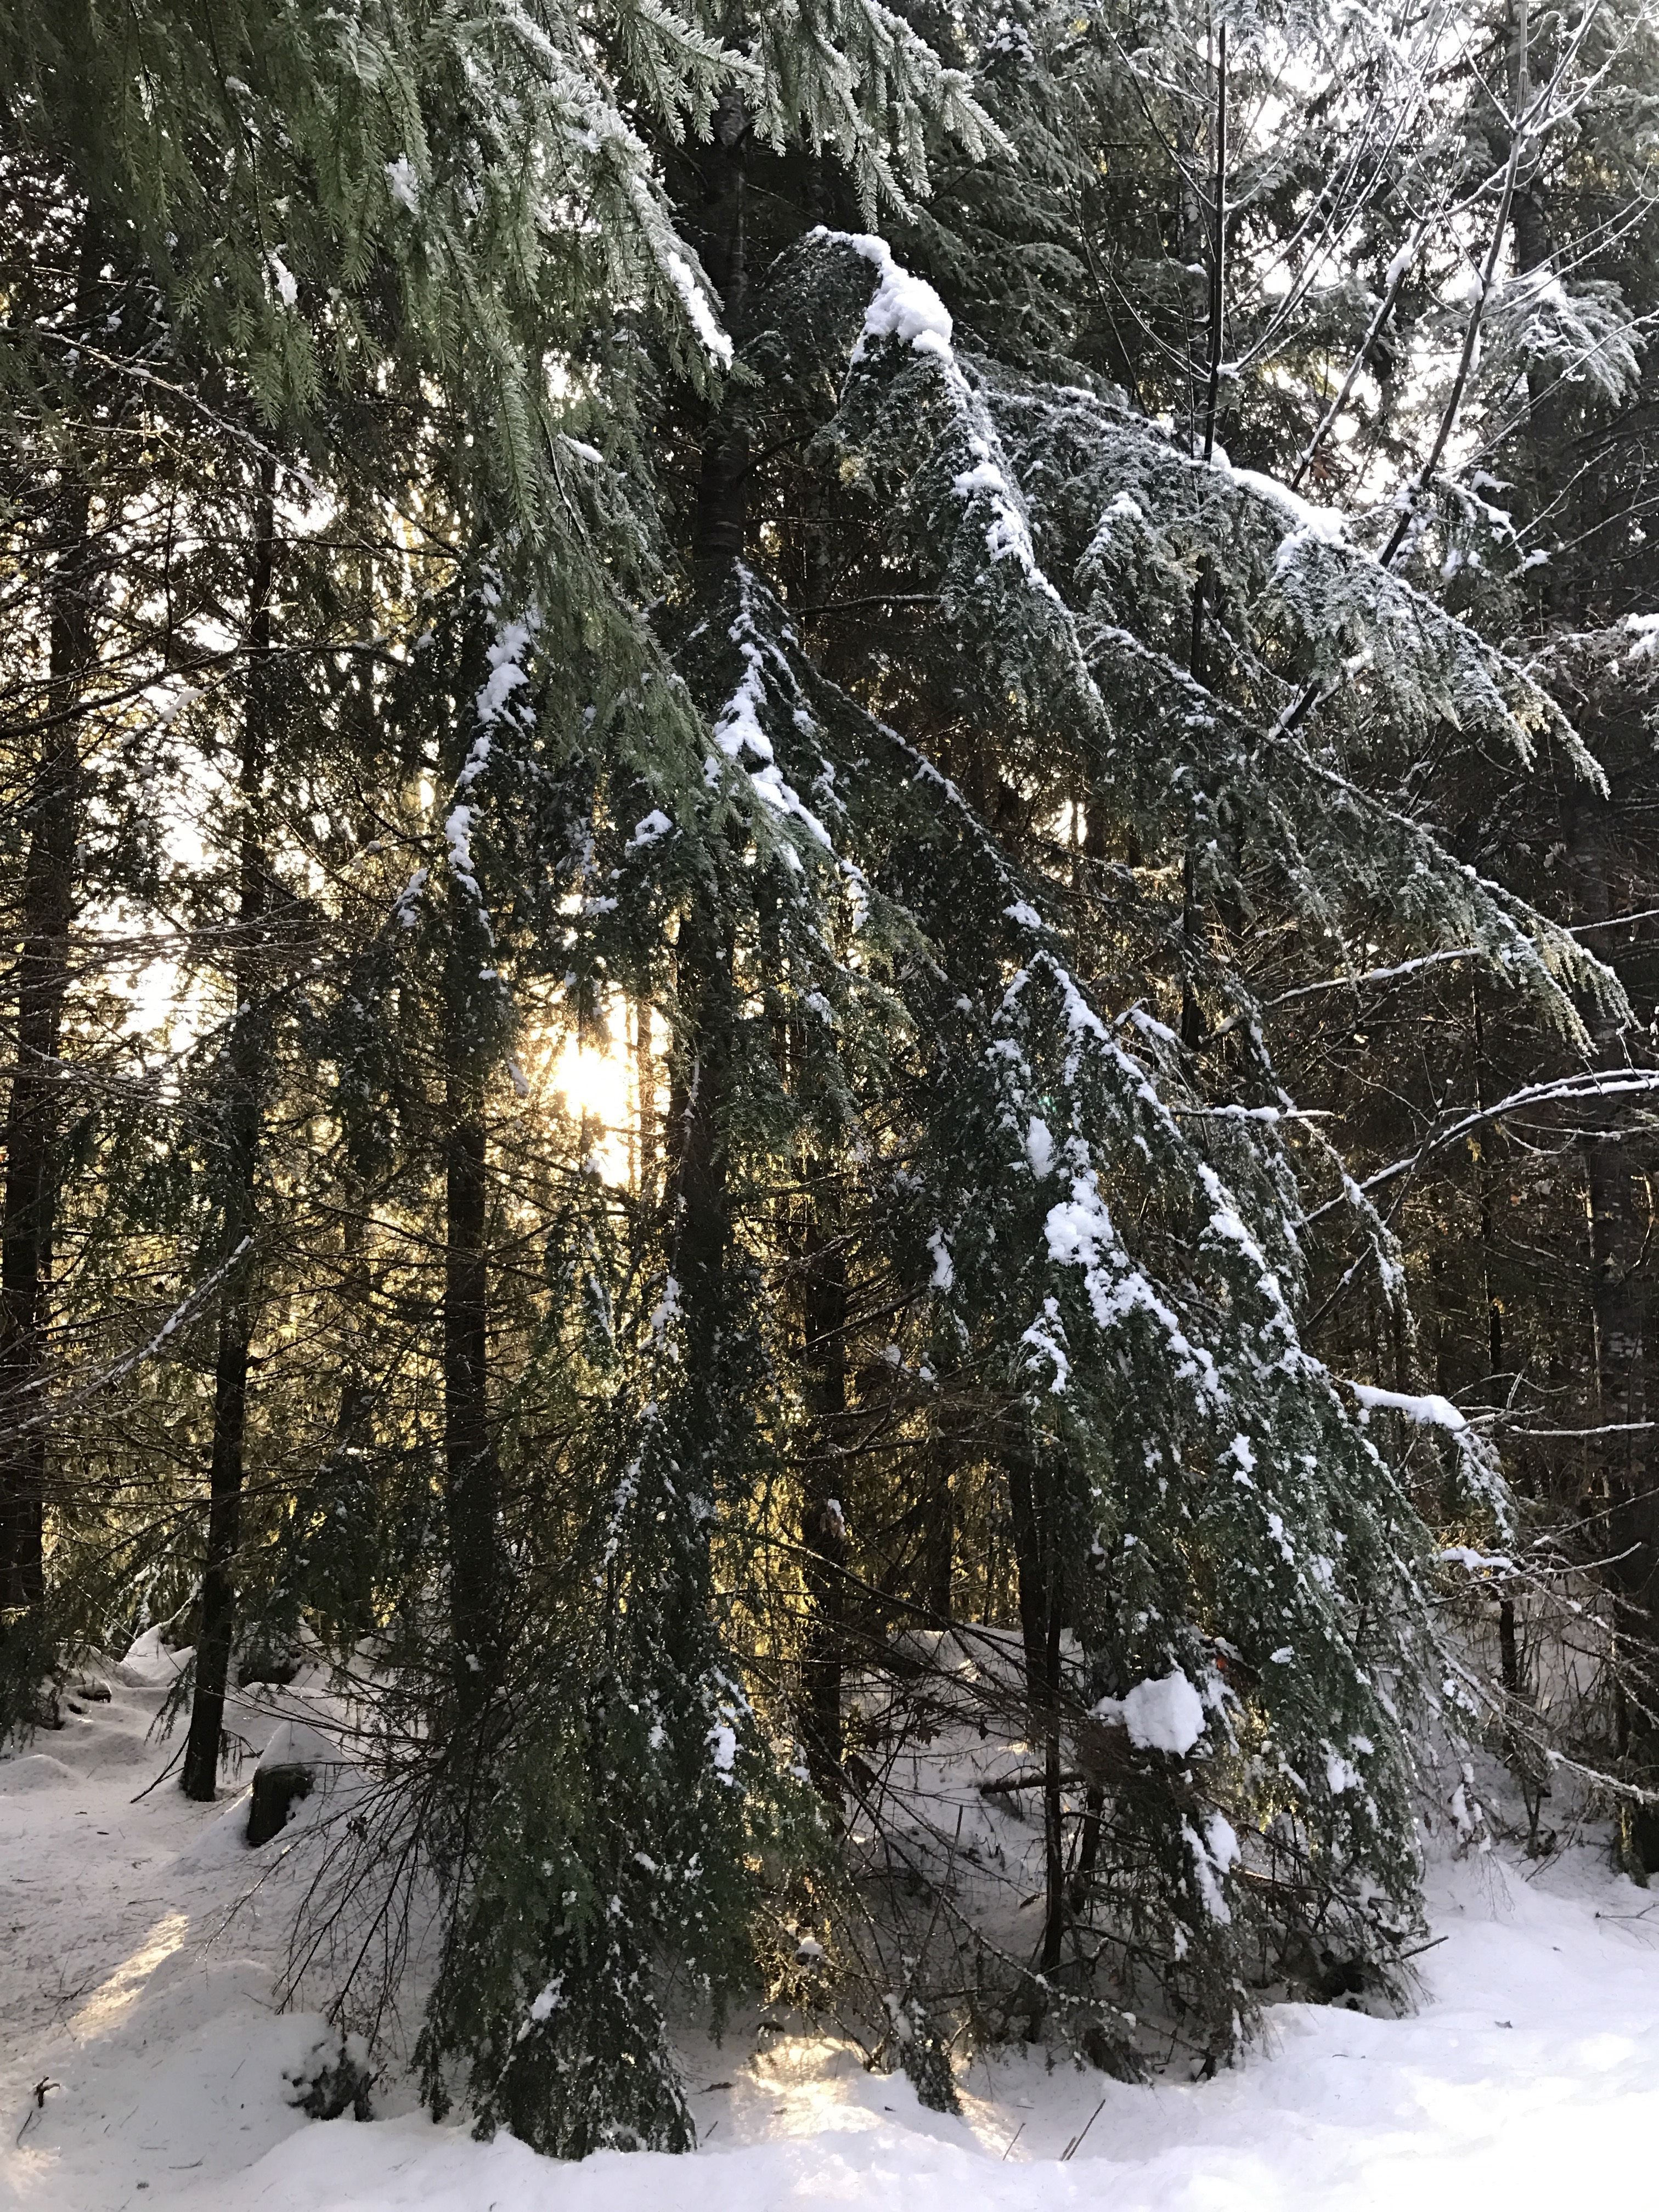 Snowy woods, with sunlight in the background.